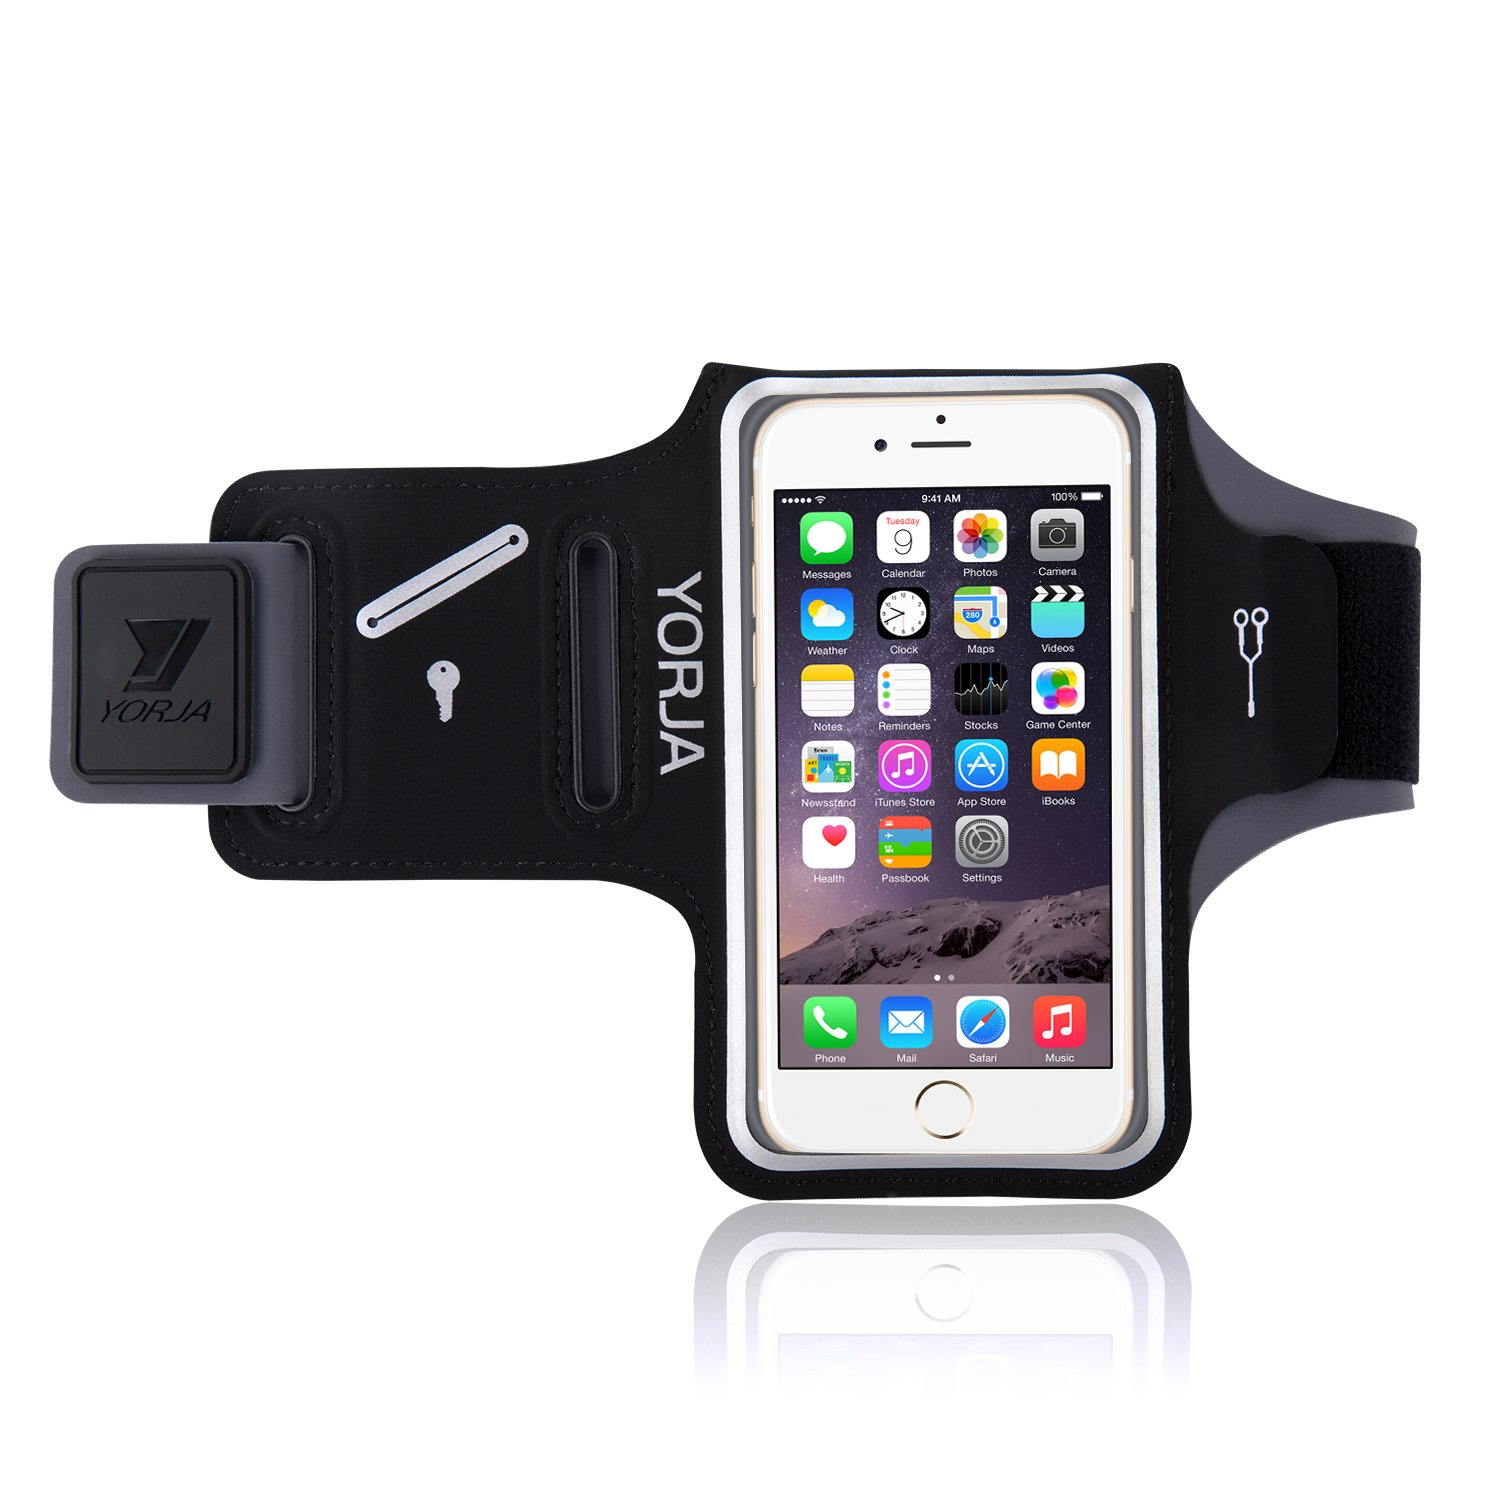 Running Armband For Cell Phone Yorja Iphone X Xs Xr Xs Max 8 Plus 7 Plus 6 Plus Galaxy S9 S8 S7 Edge Arm Holder For Jogging Hiking Workout Fitness